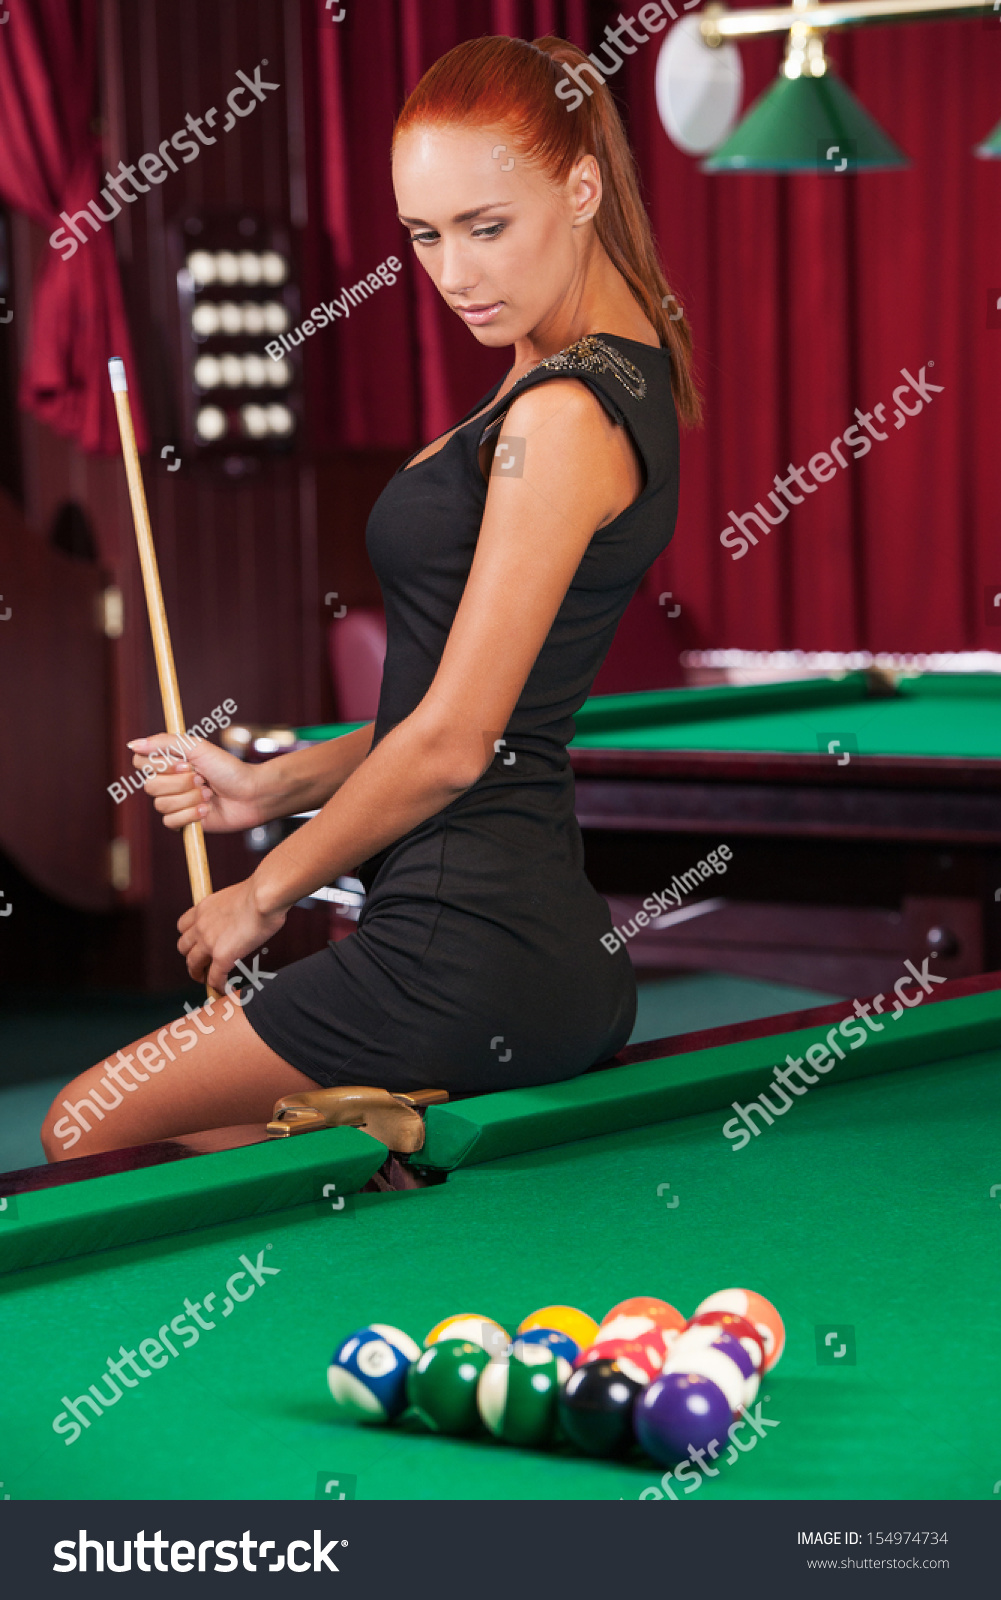 Nude women with pool cues